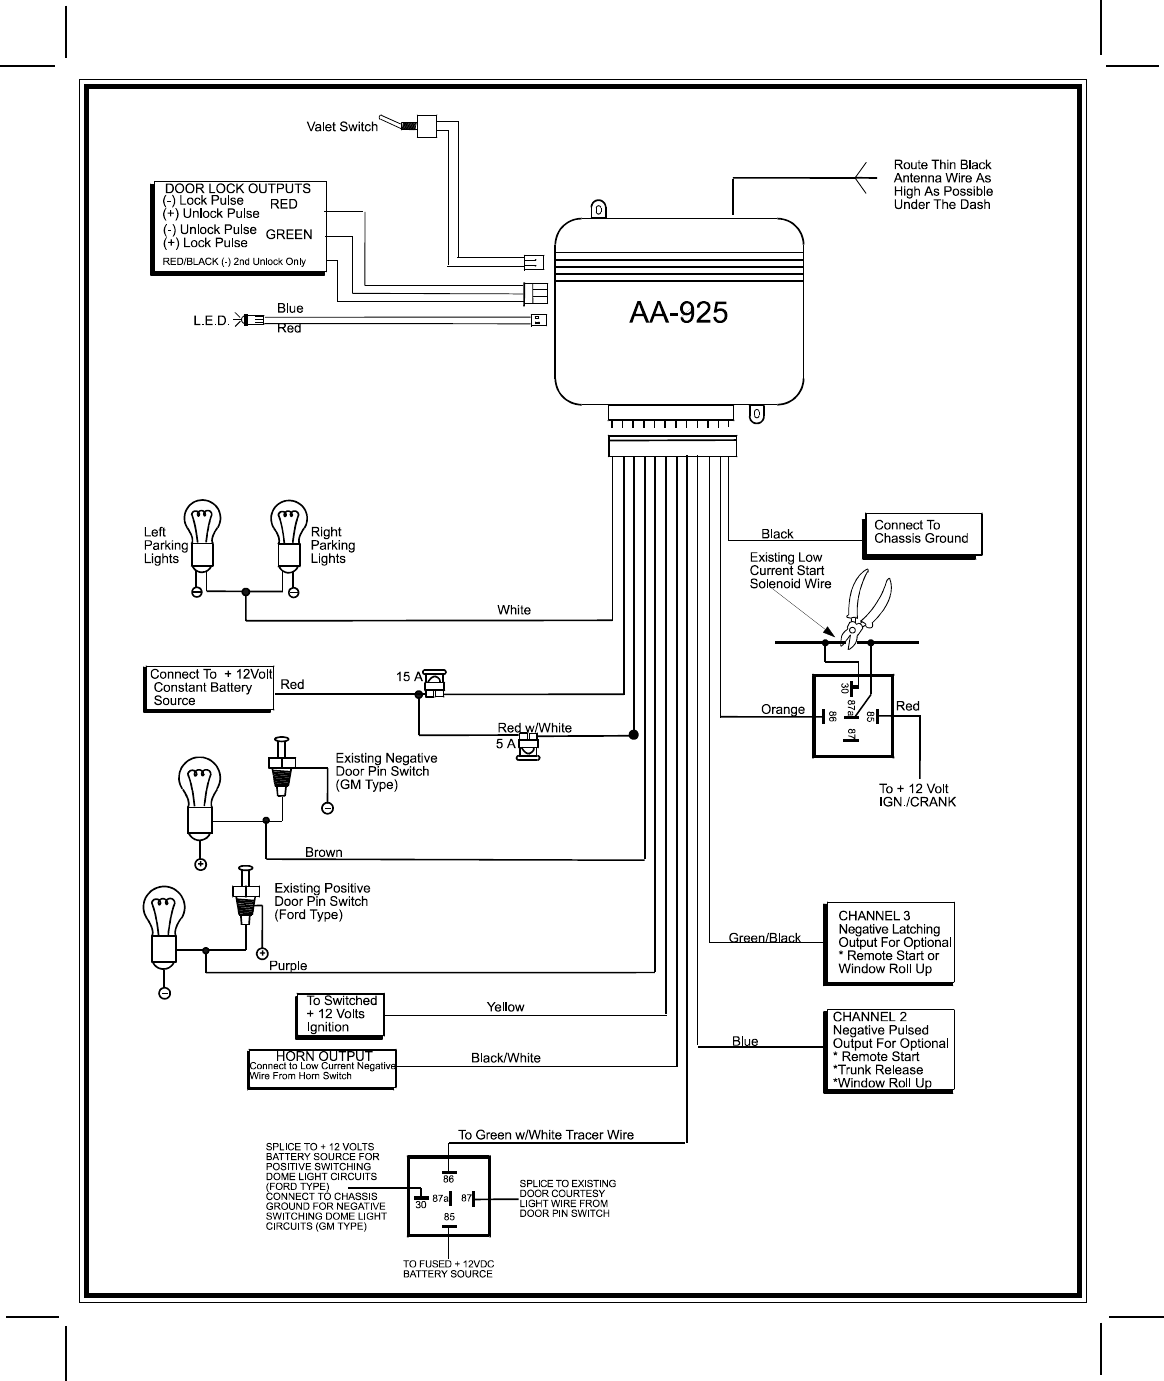 728e5939 5a52 46a4 ba14 2e72baef2843 bg8 audiovox keyless entry wiring diagrams wiring diagram simonand vehicle remote starter wiring diagram at mr168.co